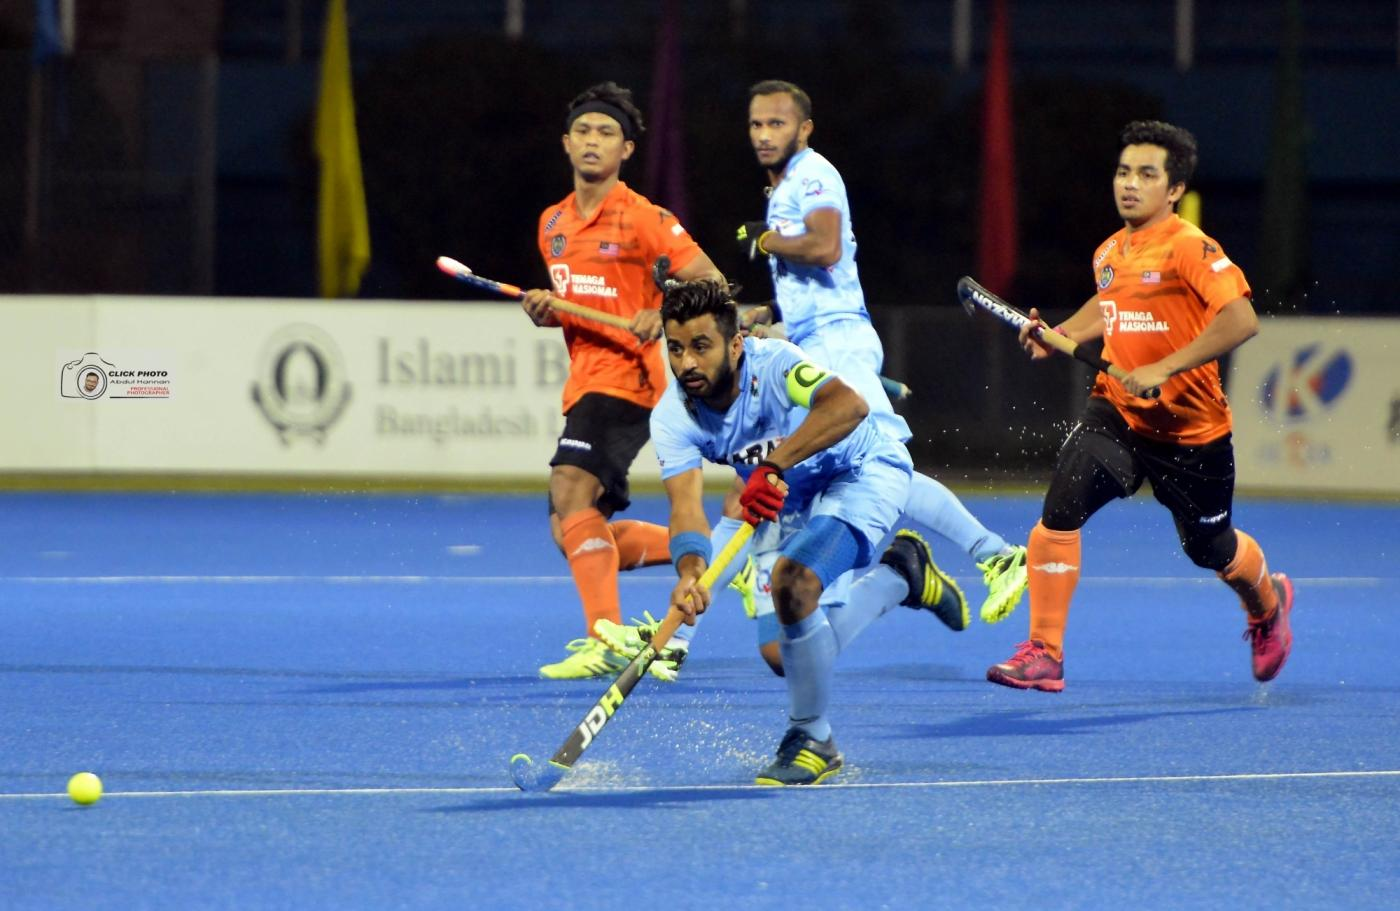 Dhaka: Manpreet Singh in action during the Final against Malaysia in the Hero Asia Cup 2017 at the Maulana Bhashani National Hockey Stadium in Dhaka, Bangladesh on Oct 22, 2017. (Photo: IANS) by .